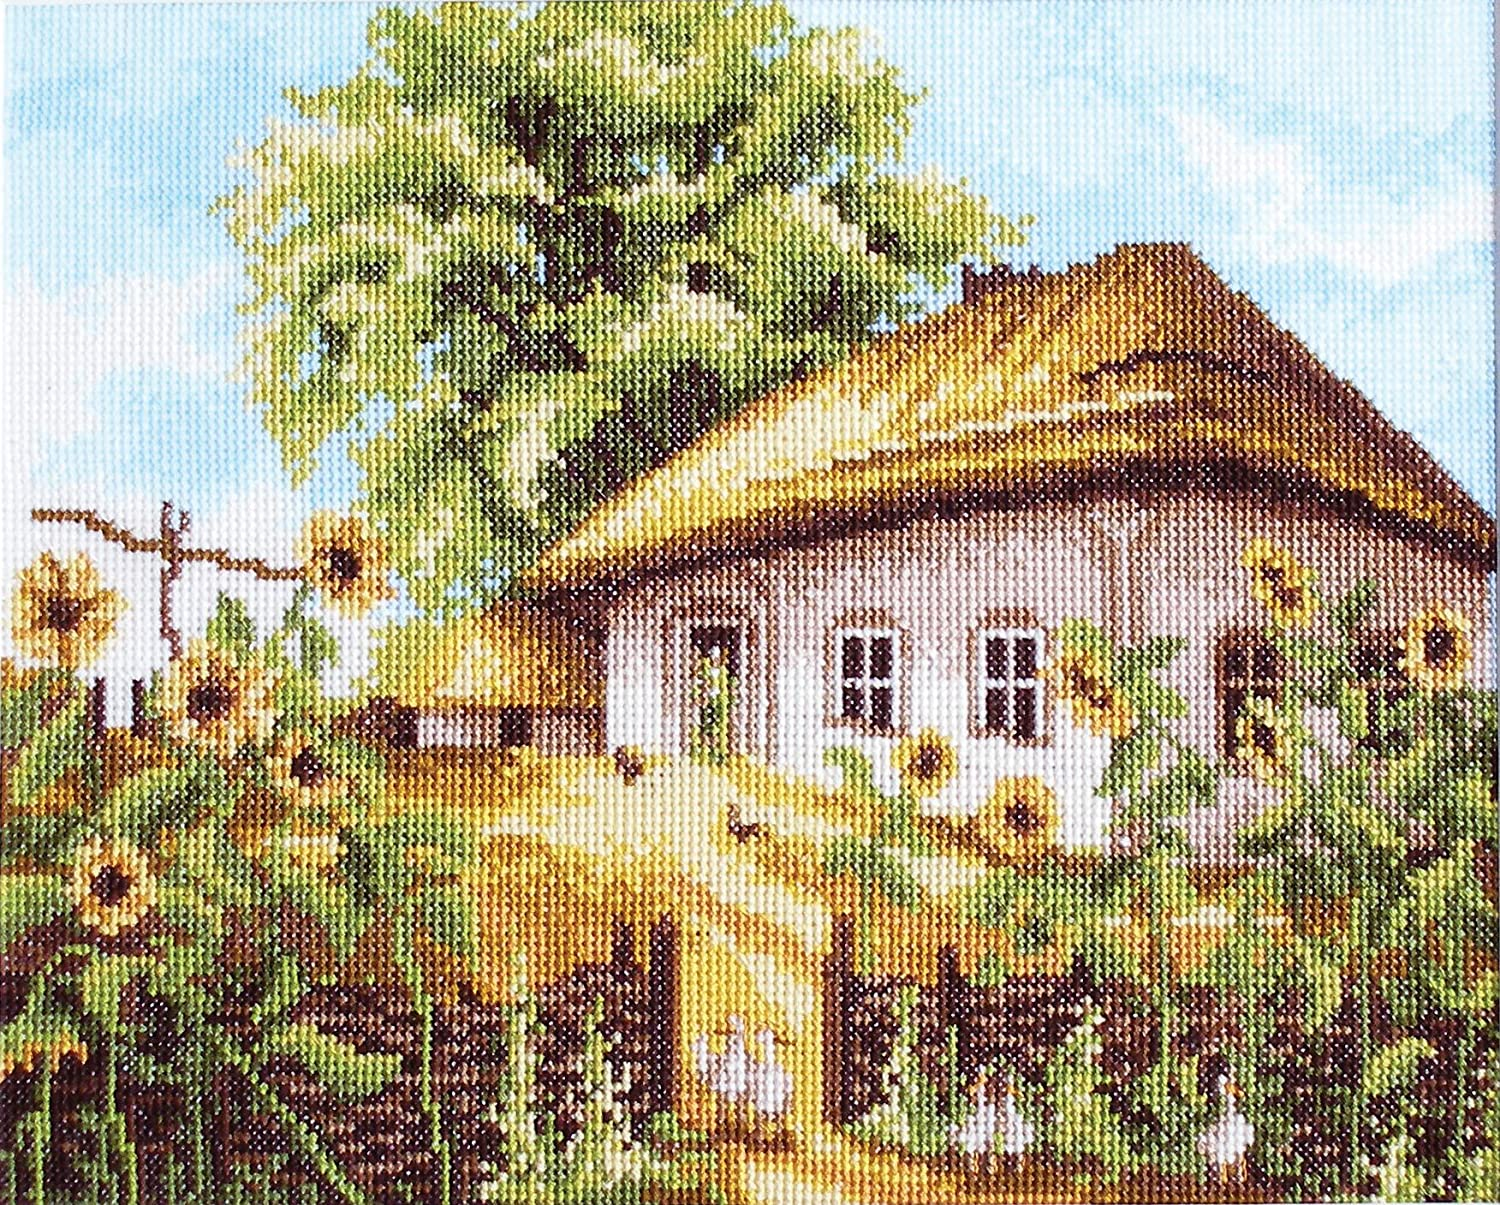 ; Use as Home Decor Counted Cross Stitch Kit Sunny day by Povitrulya Embroidery Kit with Pattern Gift or Present for parents and loved ones 25 х 20,5cm Set for Adults ; Size 9,84х 8,07